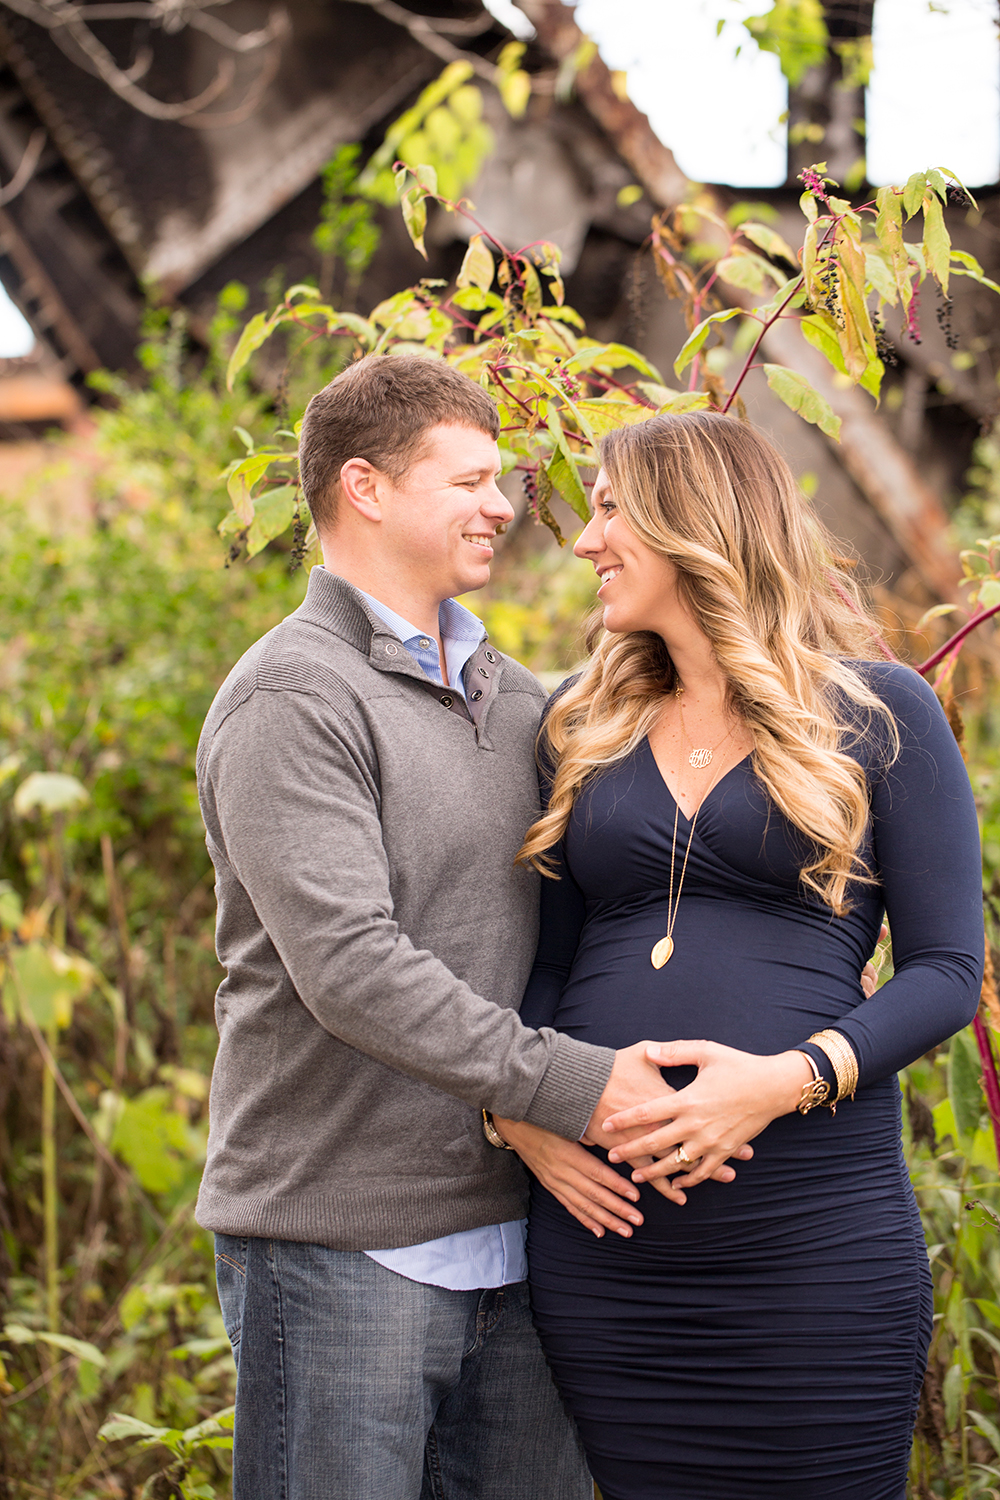 Fall Maternity Photos at Great Shiplock Park - Image Property of www.j-dphoto.com